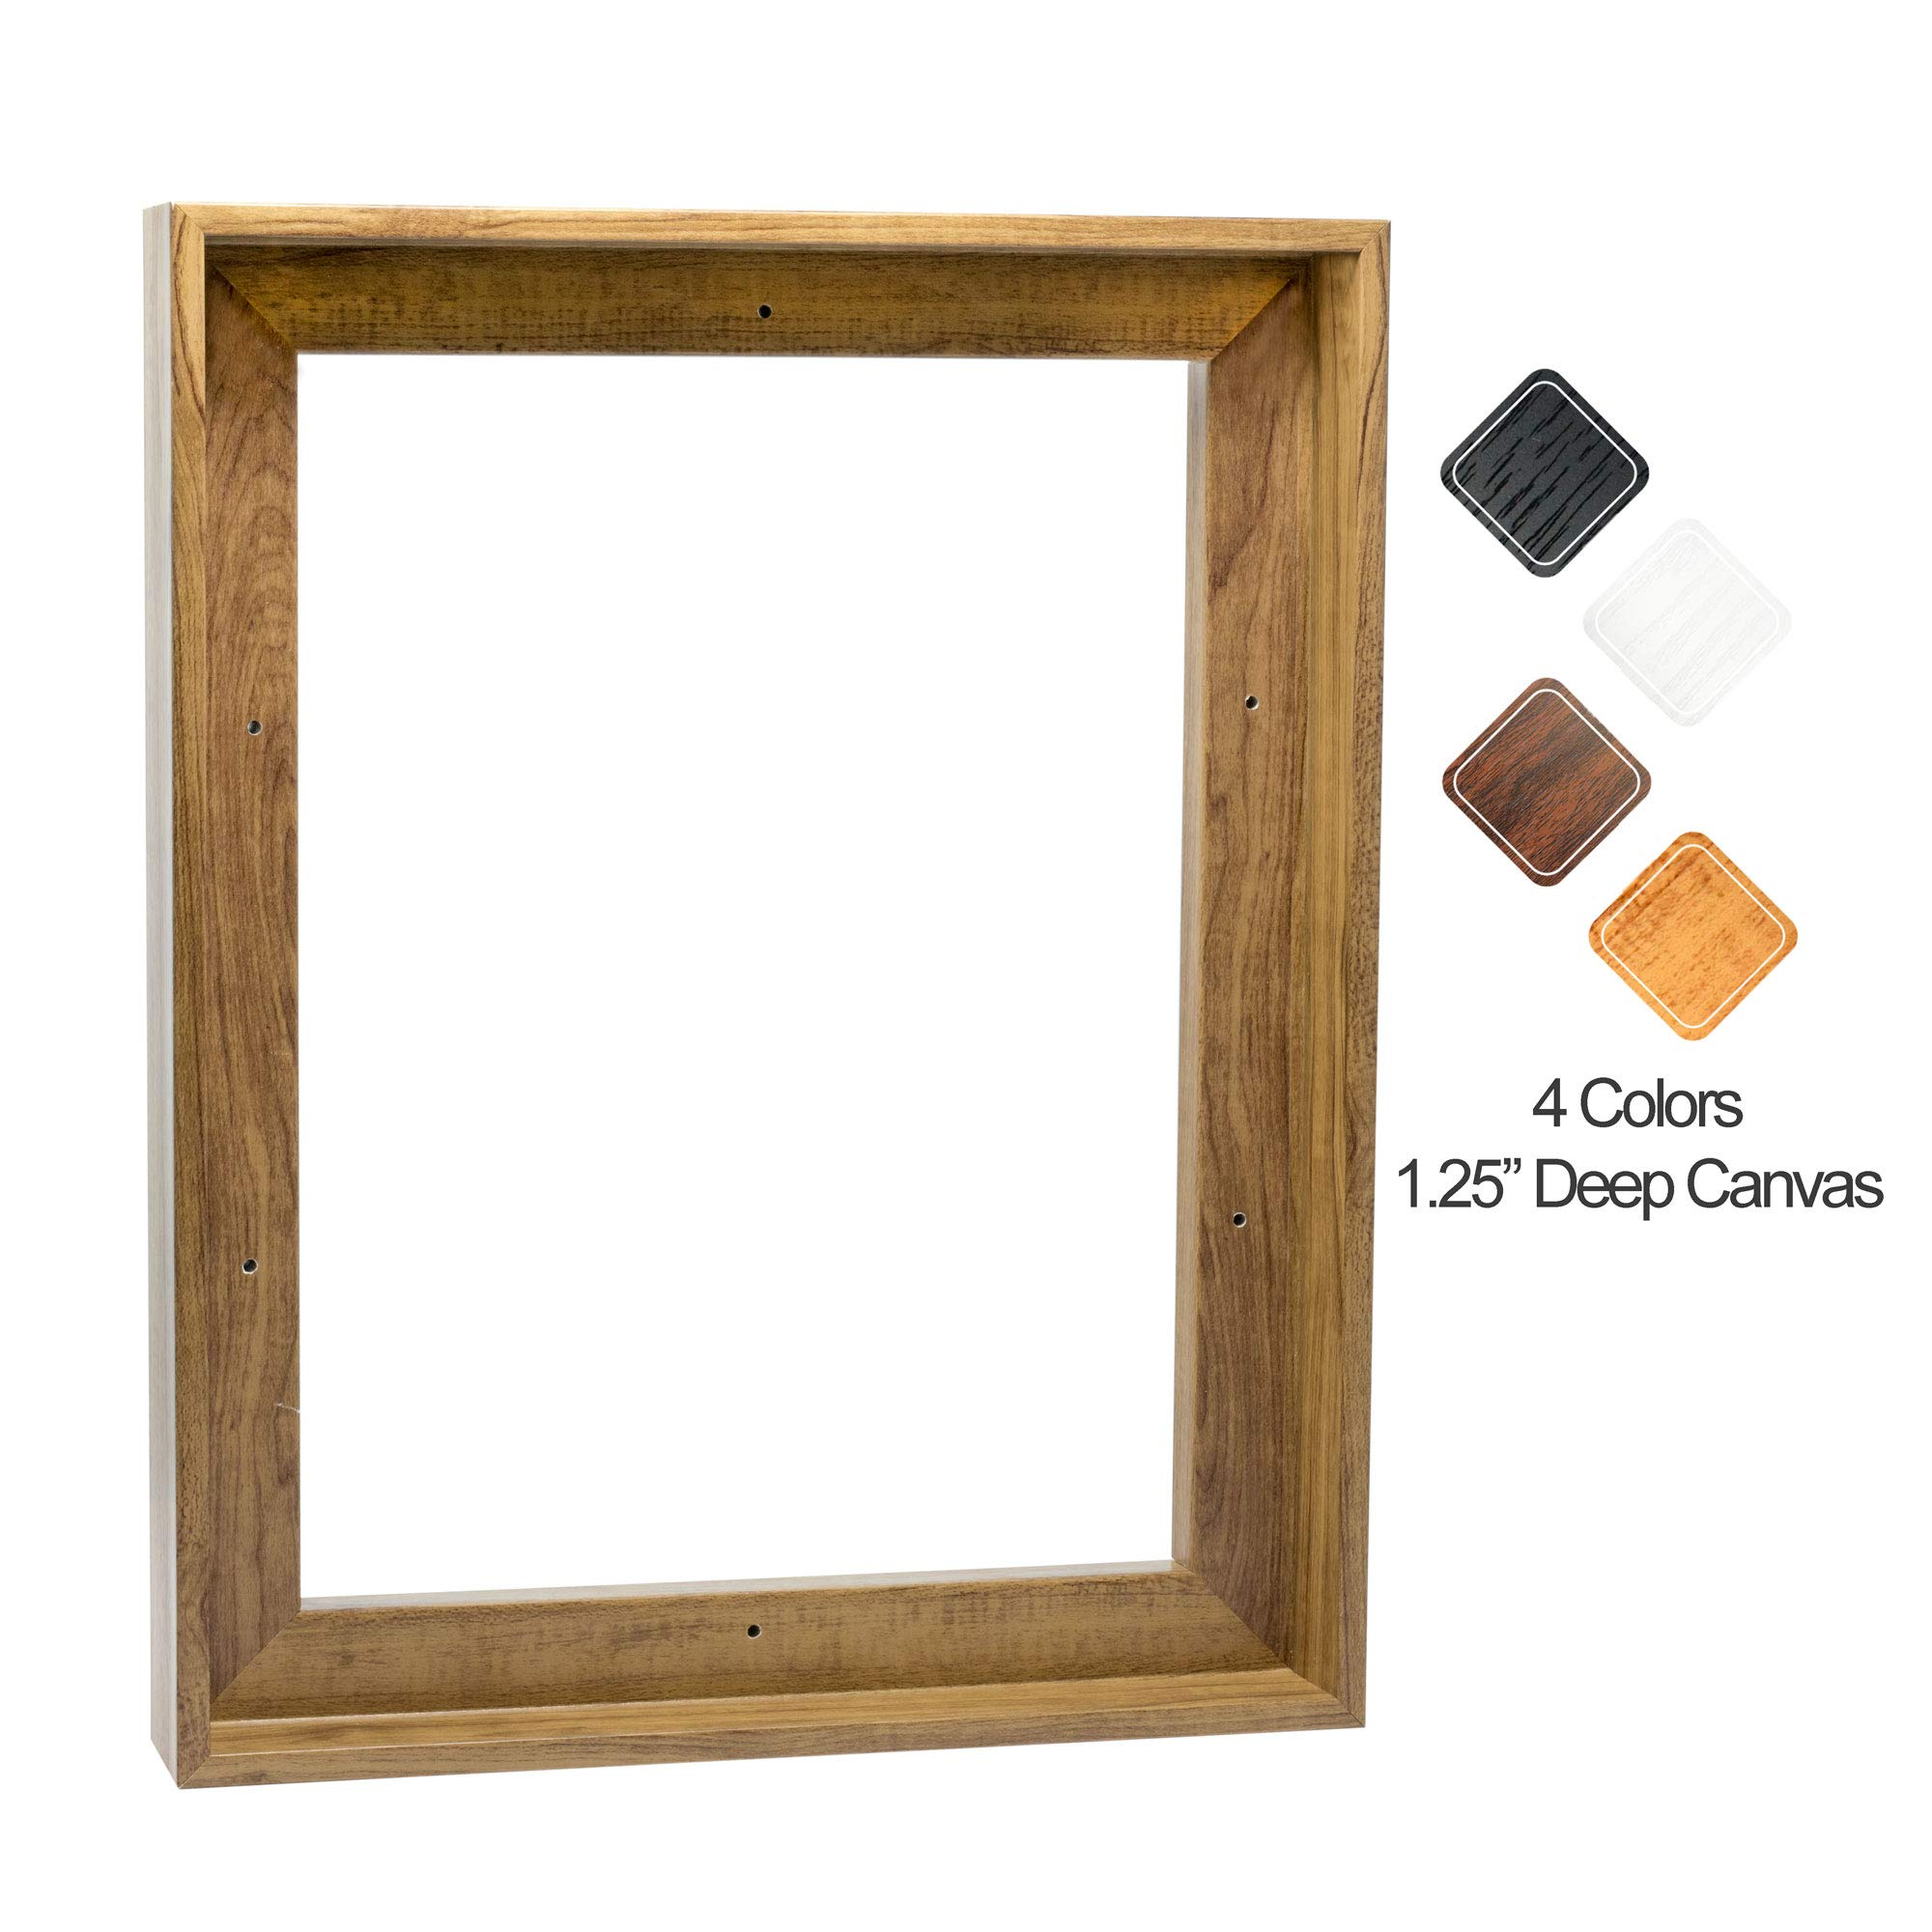 Canvas Floating Frame Picture Art Painting Display Wall Decor for 10x16 Inch Finished Canvas, Light Brown 11x17 Inch